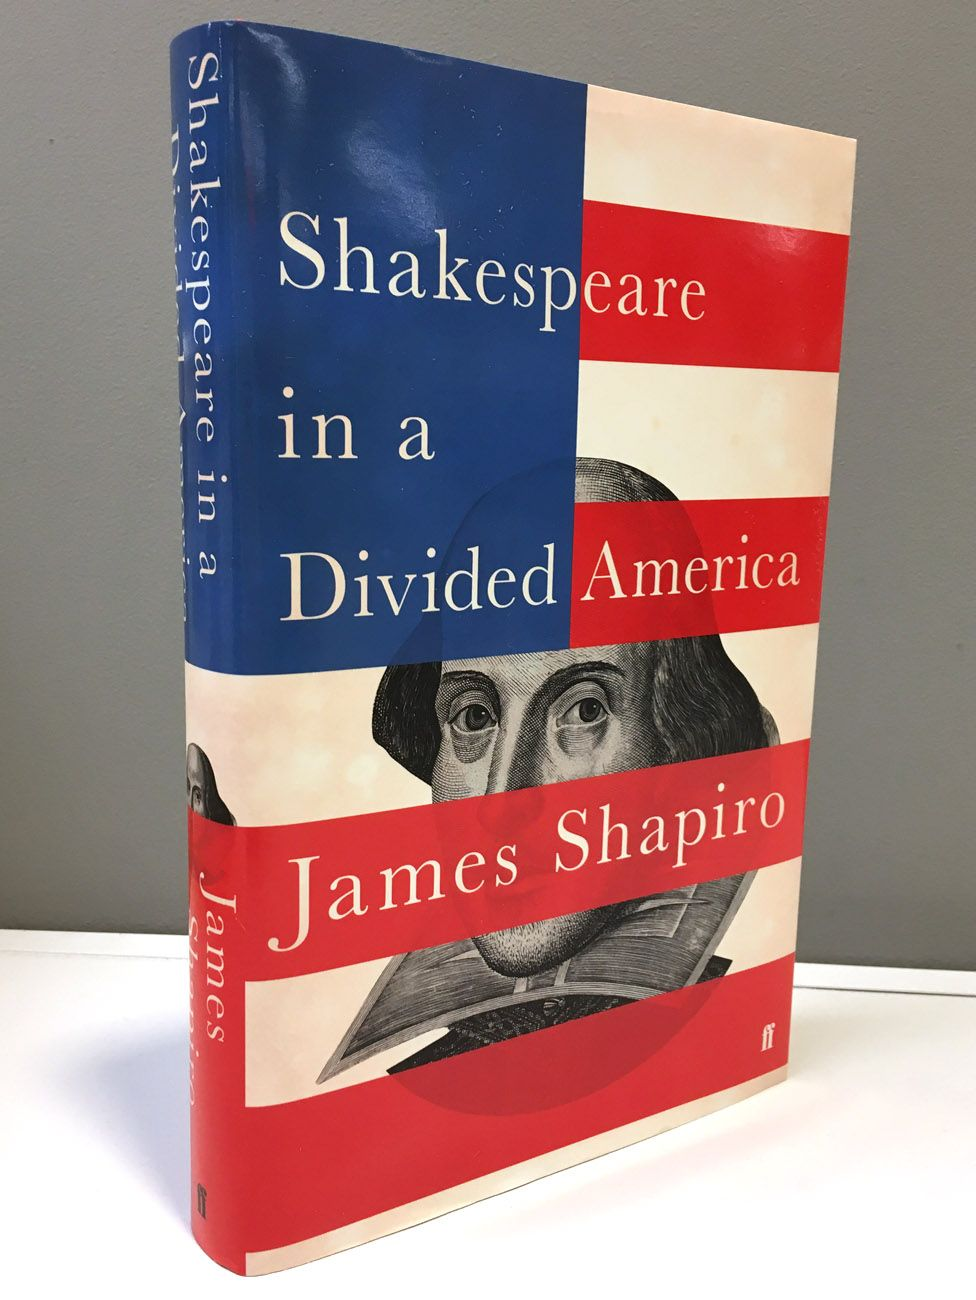 The front cover of Shakespeare in a Divided America by James Shapiro